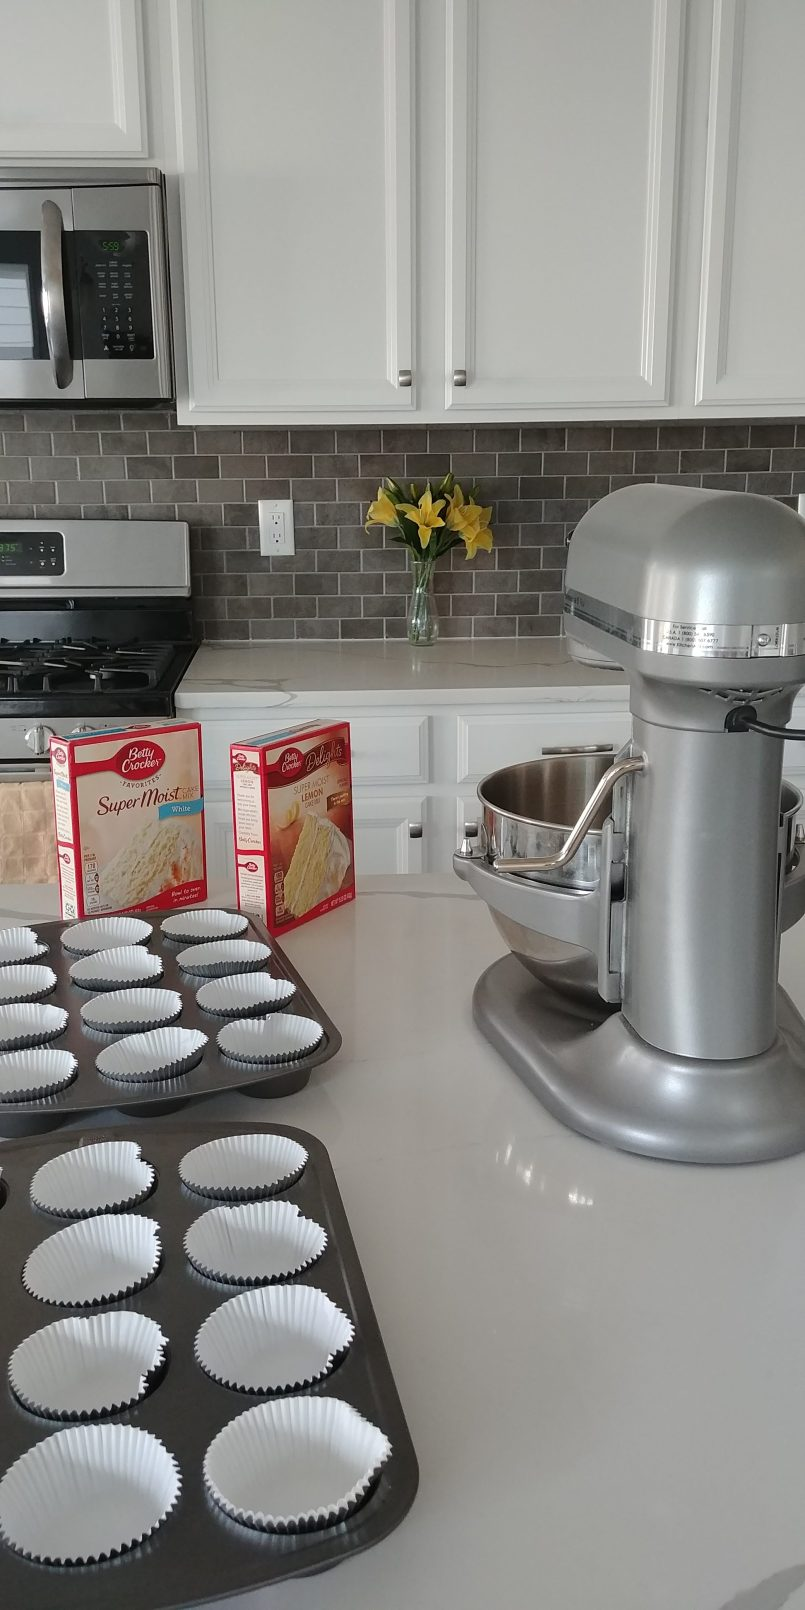 Wedding Cupcakes and Kitchen Aid